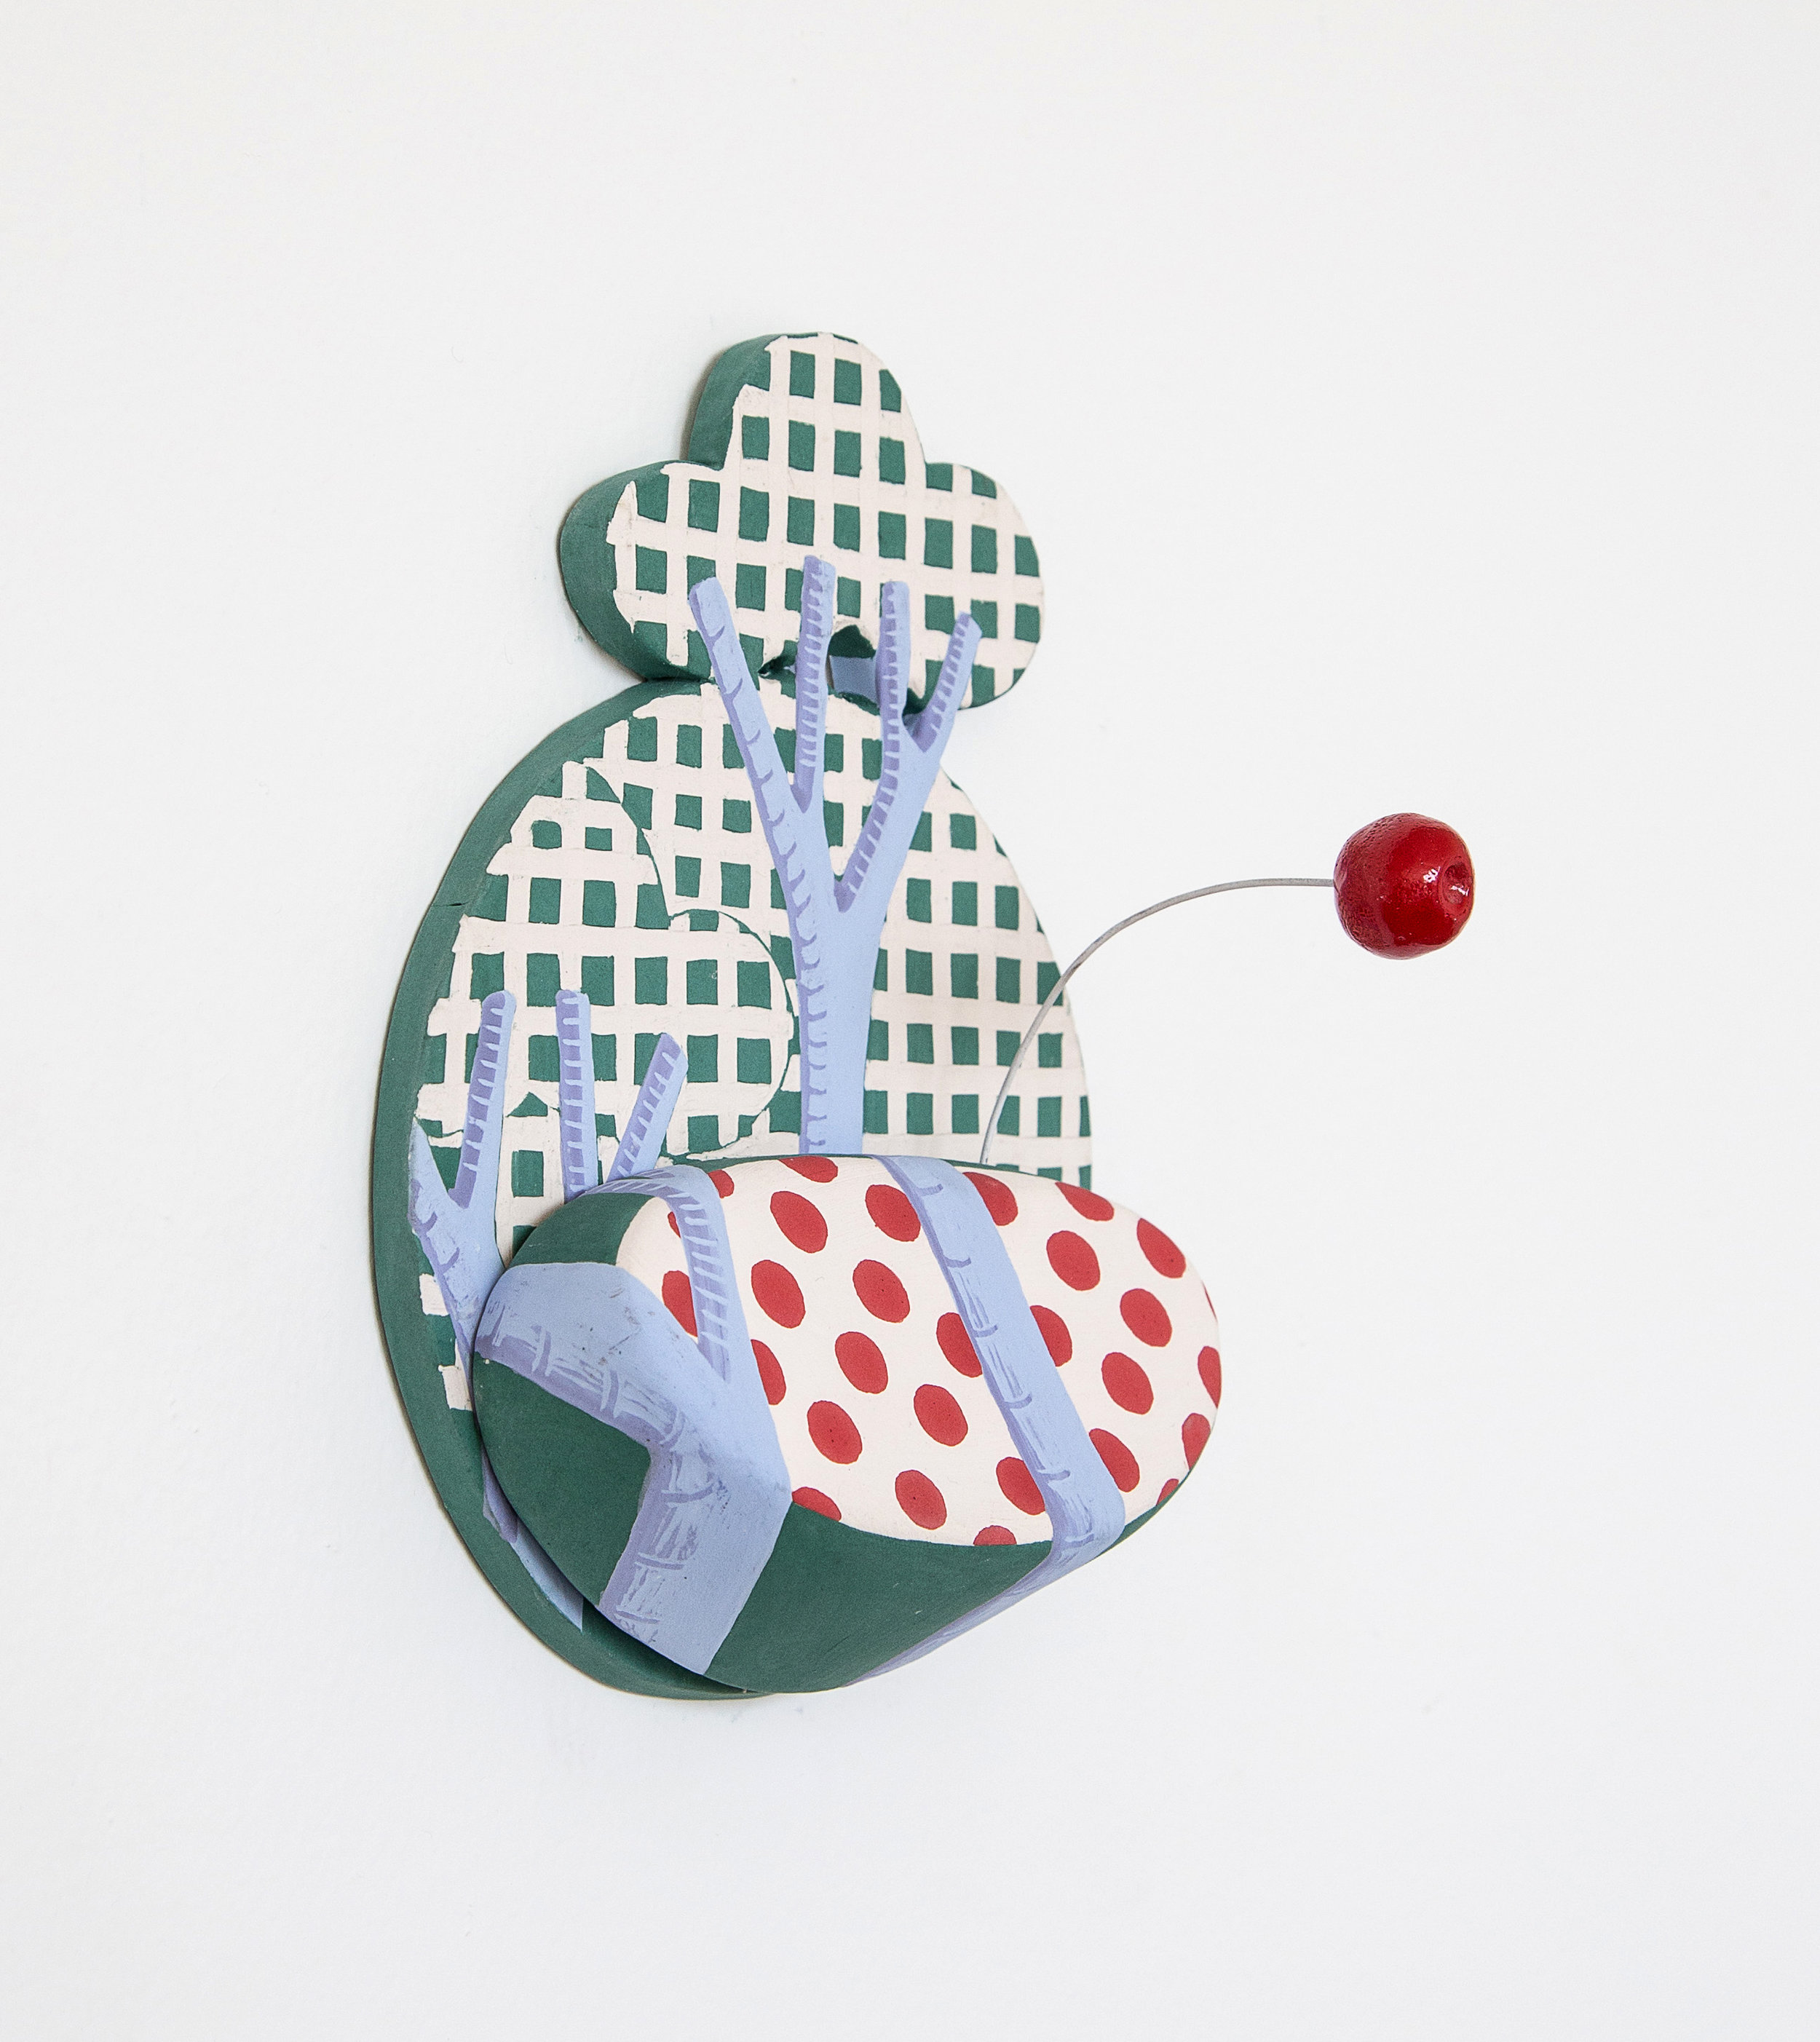 Shifty Rickrack with Boing    Porcelain tile, shelf, and appendage with wire; 7.25 x 6 x 4 inches; 2017